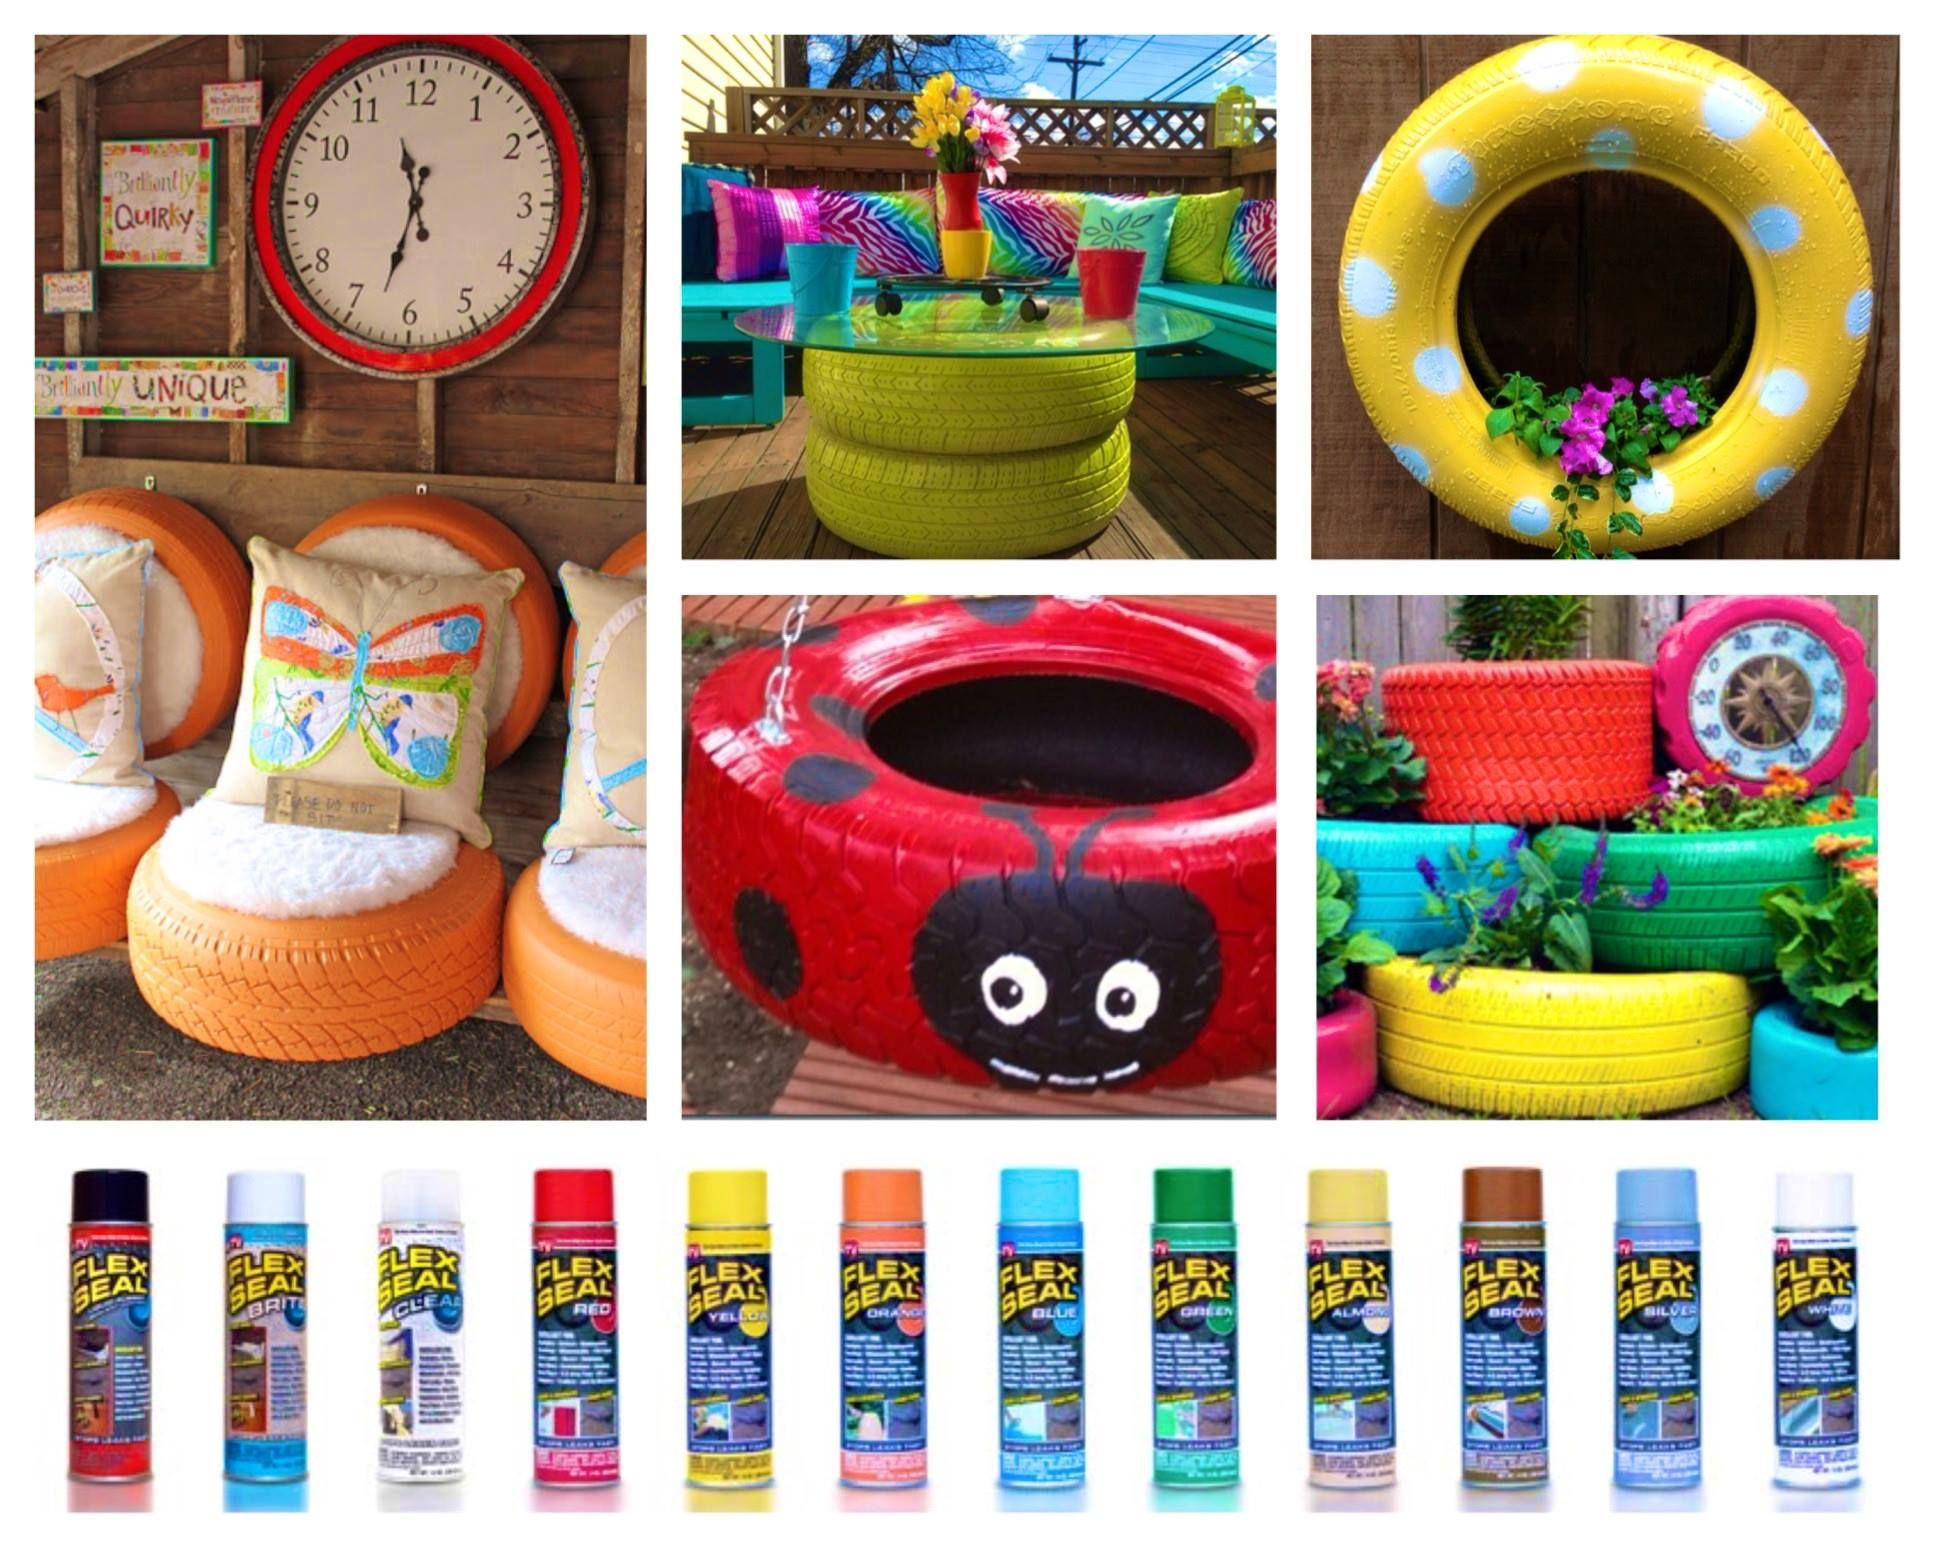 Up Cycle Those Old Tires Using Flex Seal COLORS. Planters, Chairs, Tables